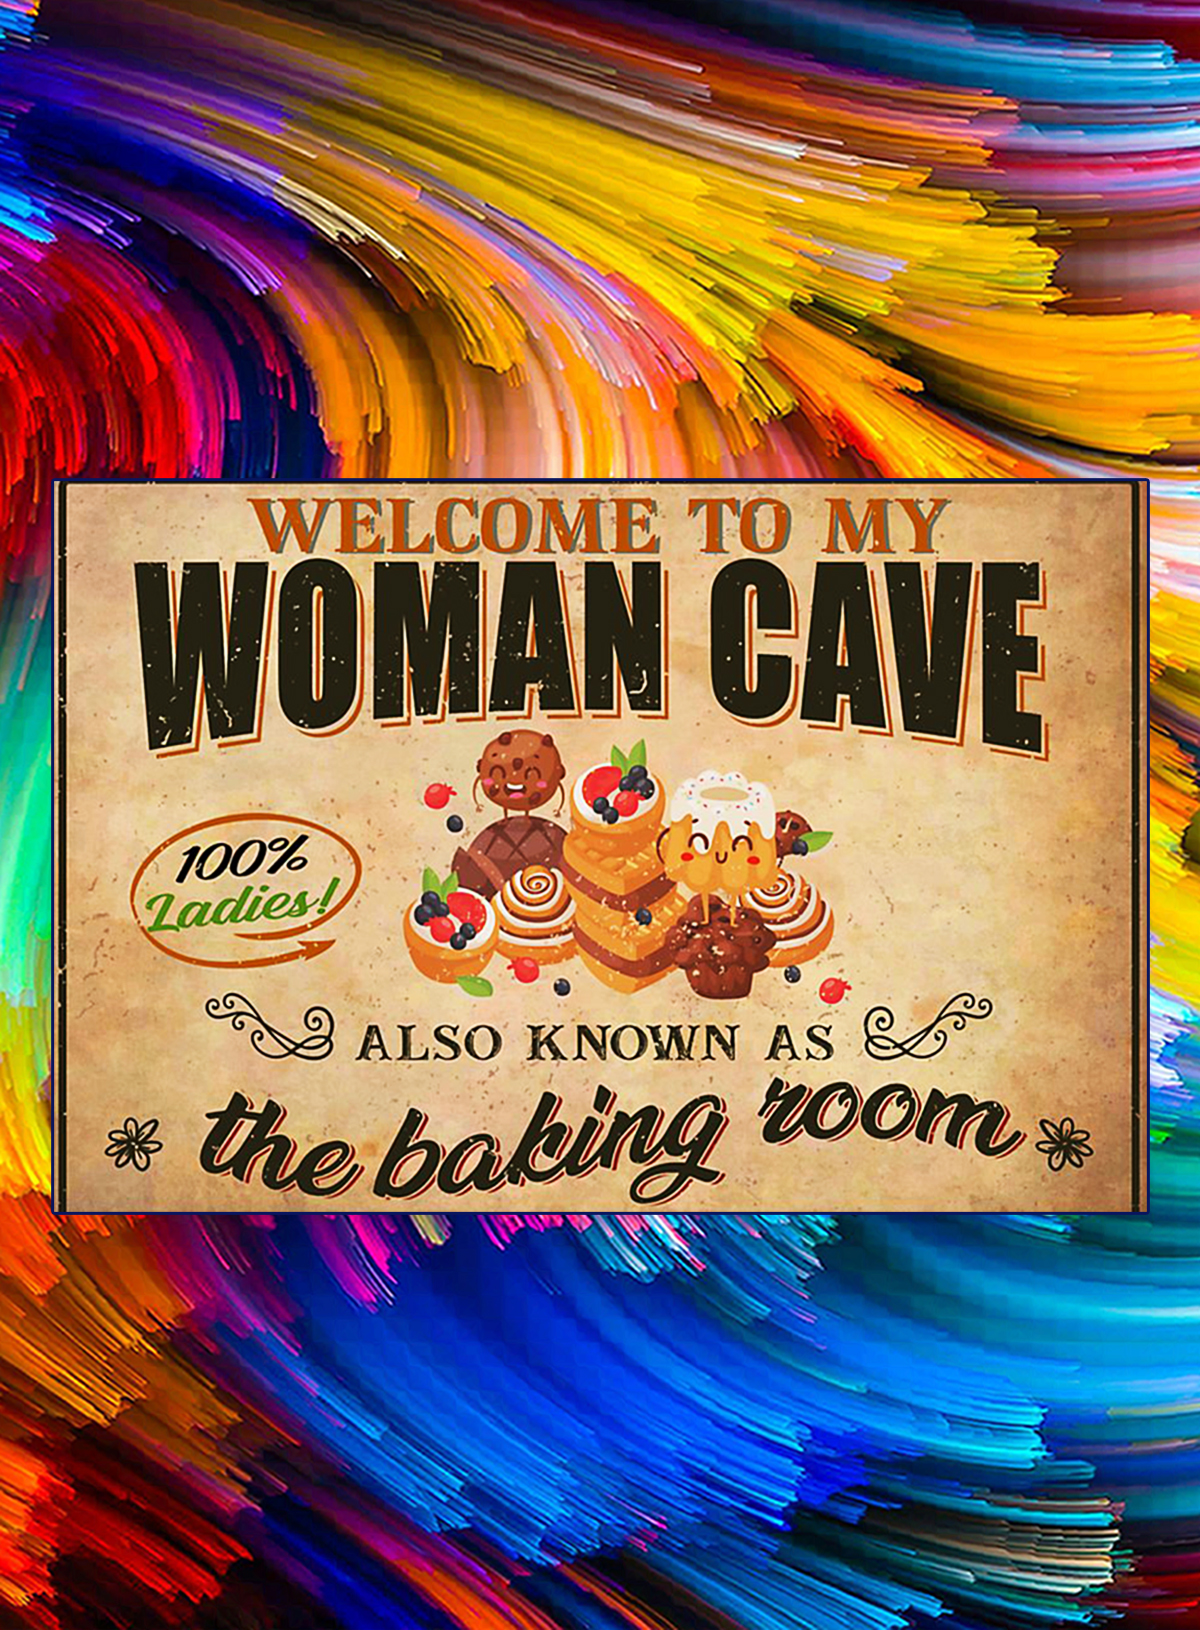 Welcome to my woman cave also know as the baking room poster - A1